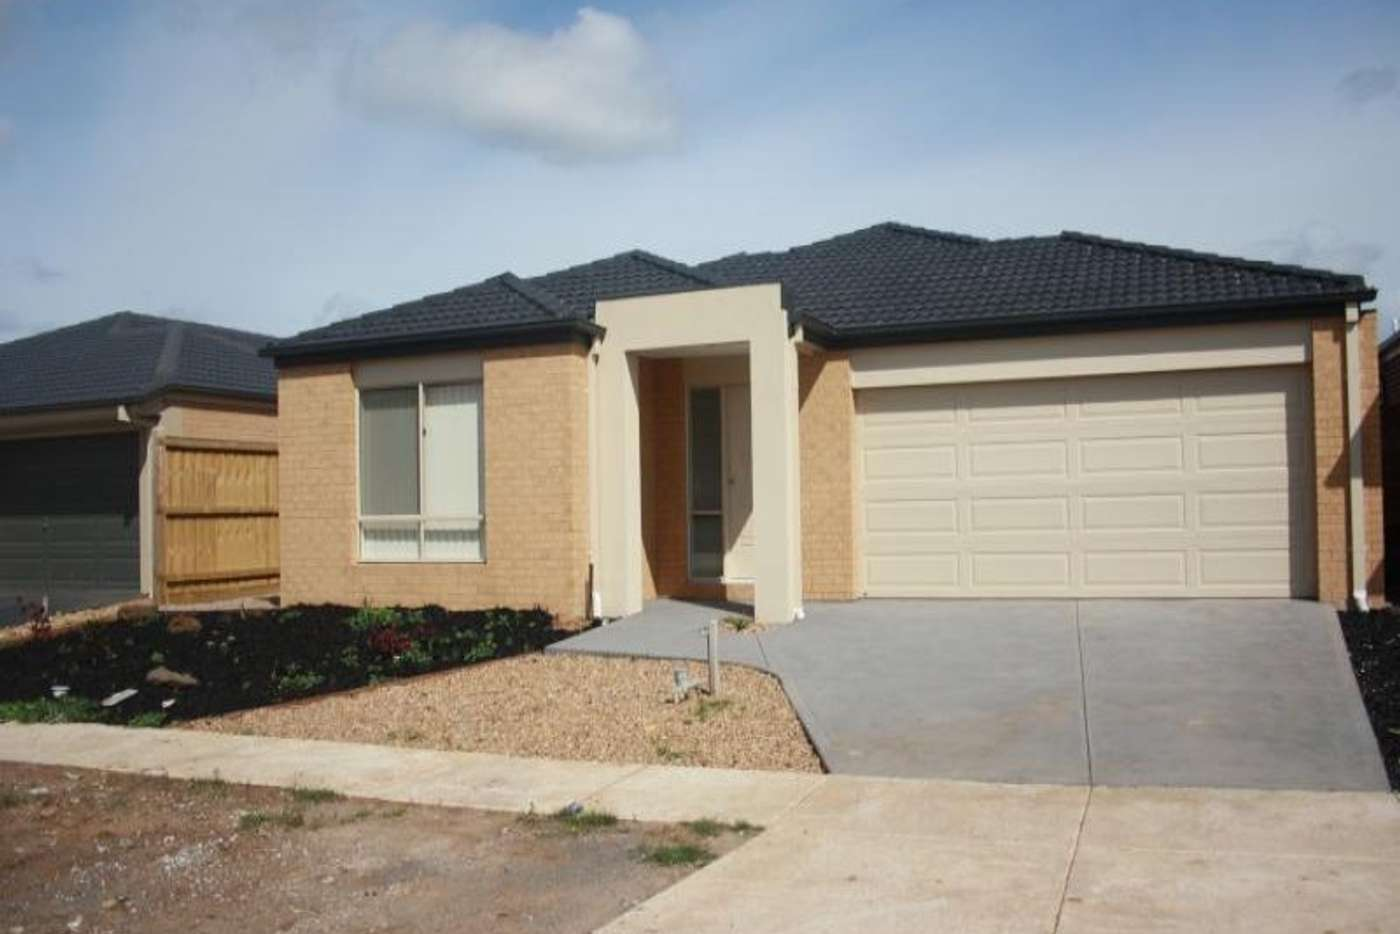 Main view of Homely house listing, 7 Reefside Drive, Point Cook VIC 3030